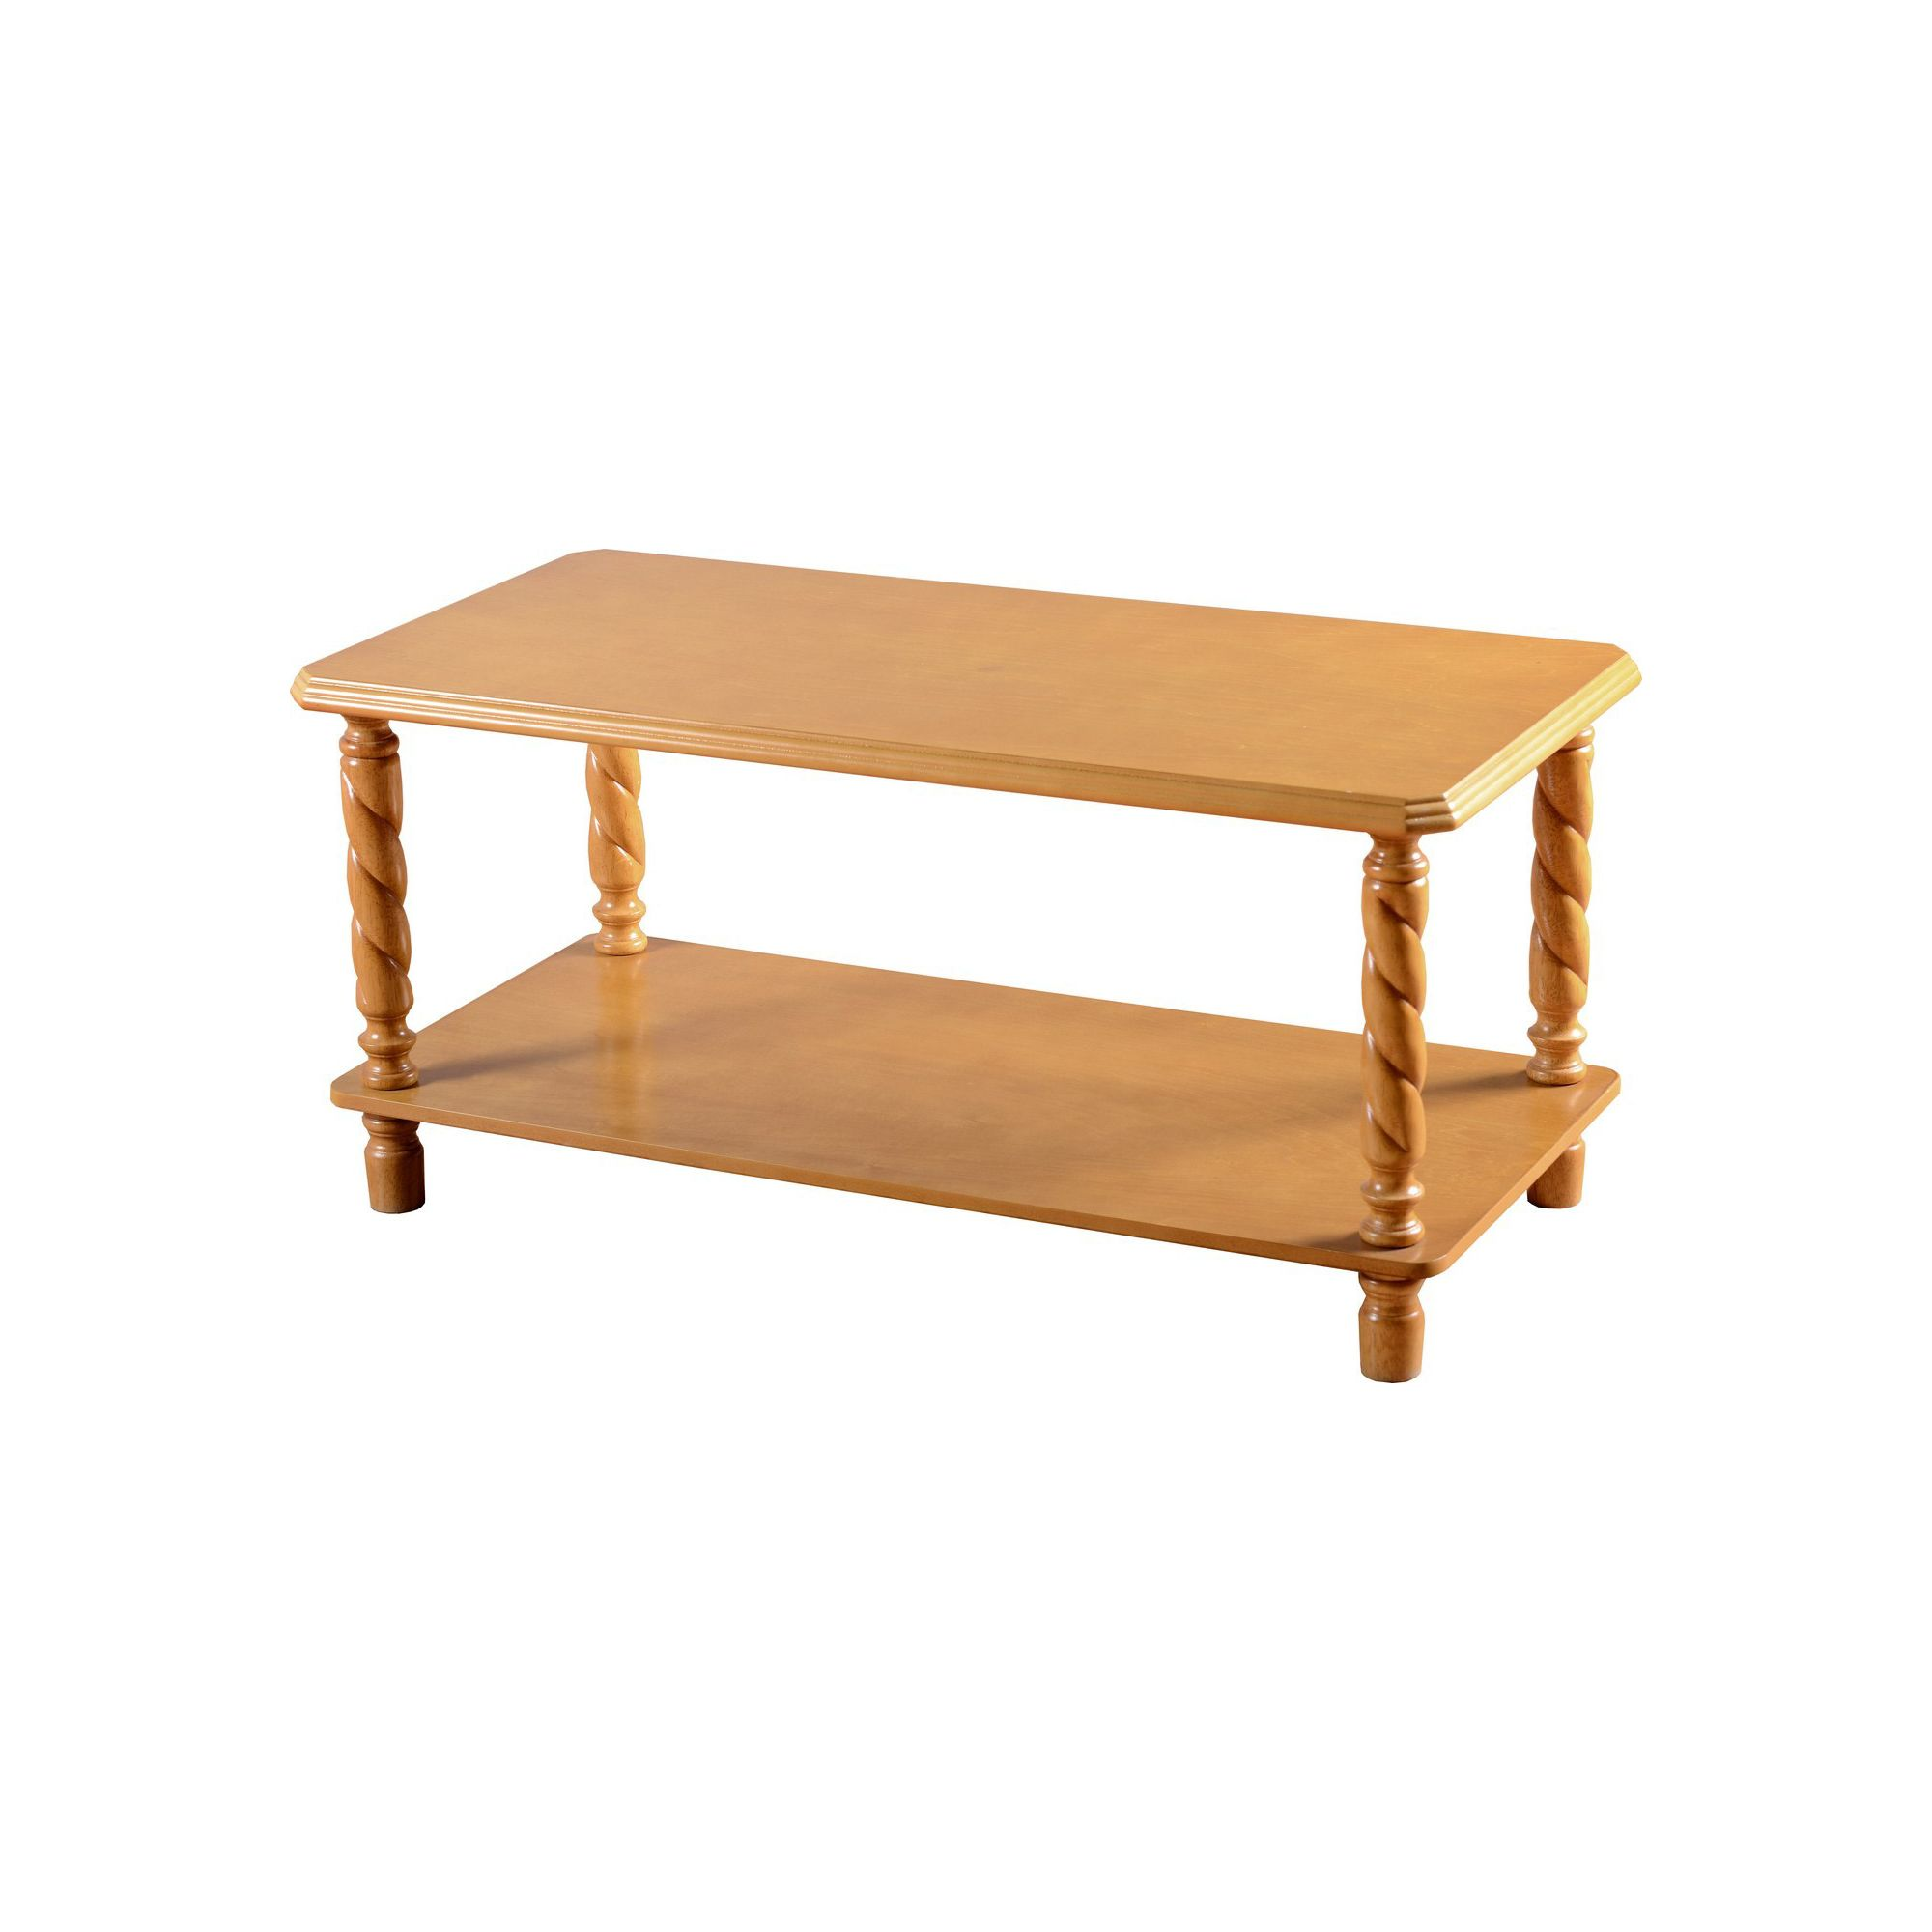 Home And Garden Furniture Home Essence Jersey Coffee Table In Antique Pine Finish Special